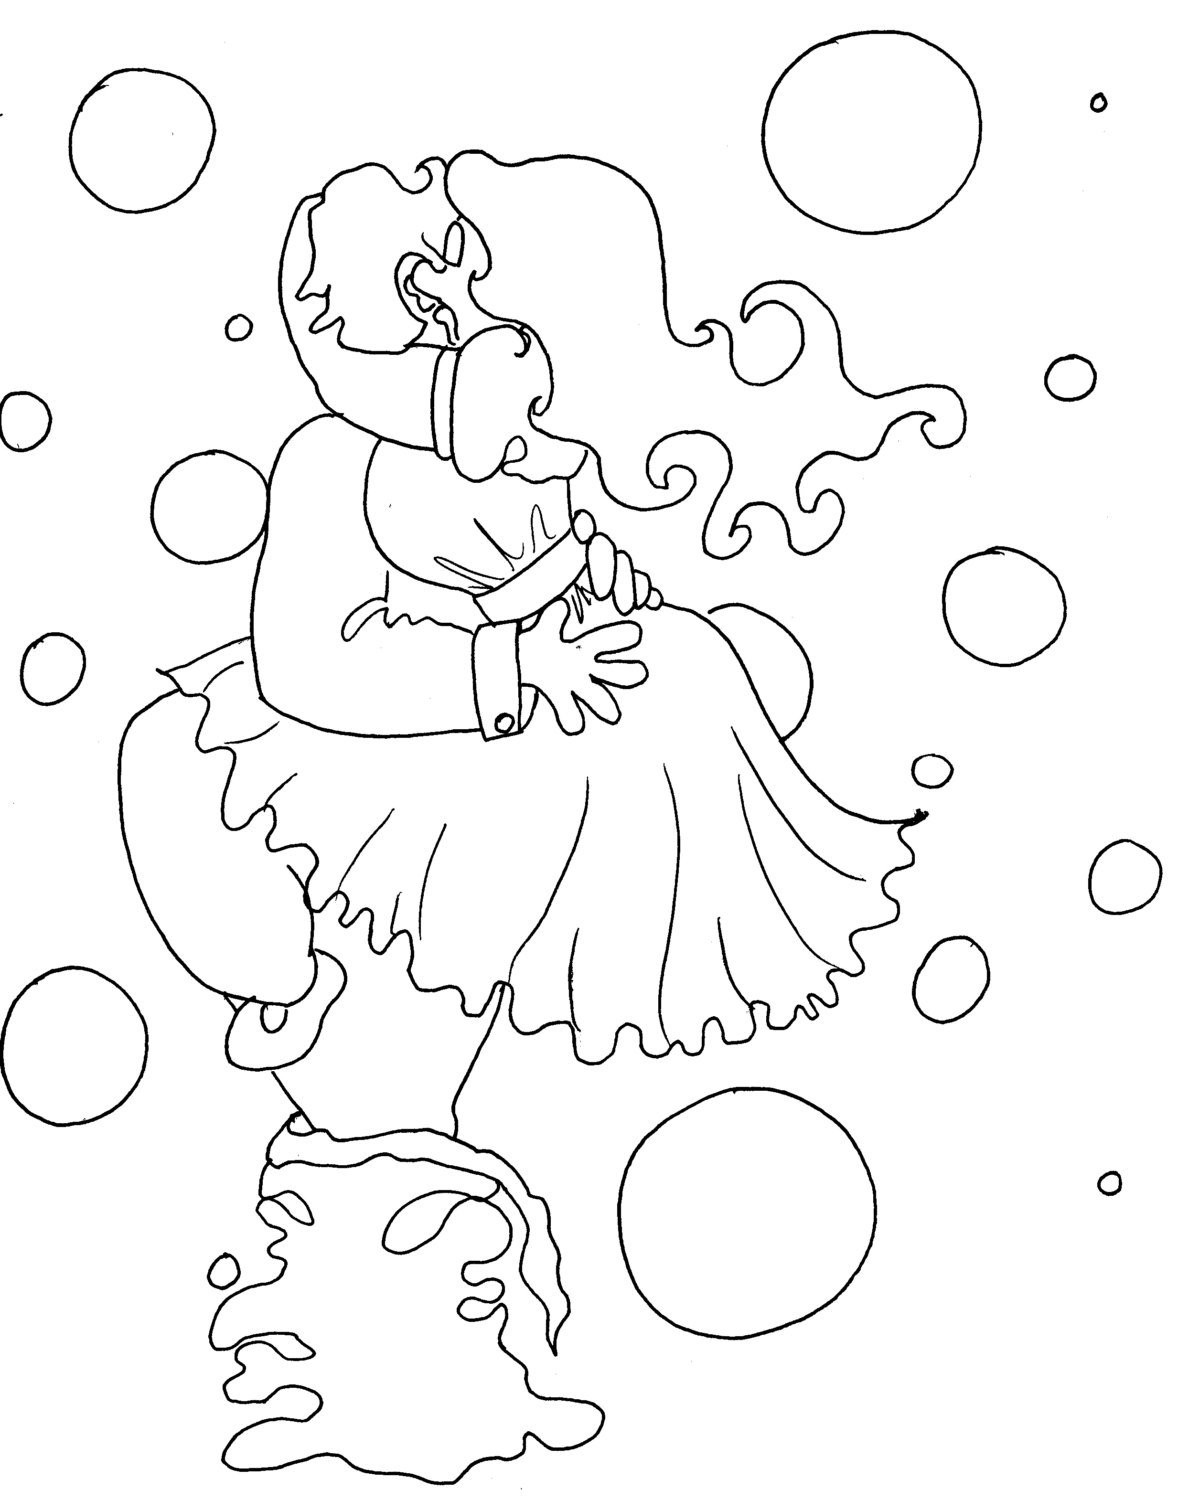 Kama Sutra Coloring Book  Suspended Congress Kama Sutra Adult Coloring Page from Chubby